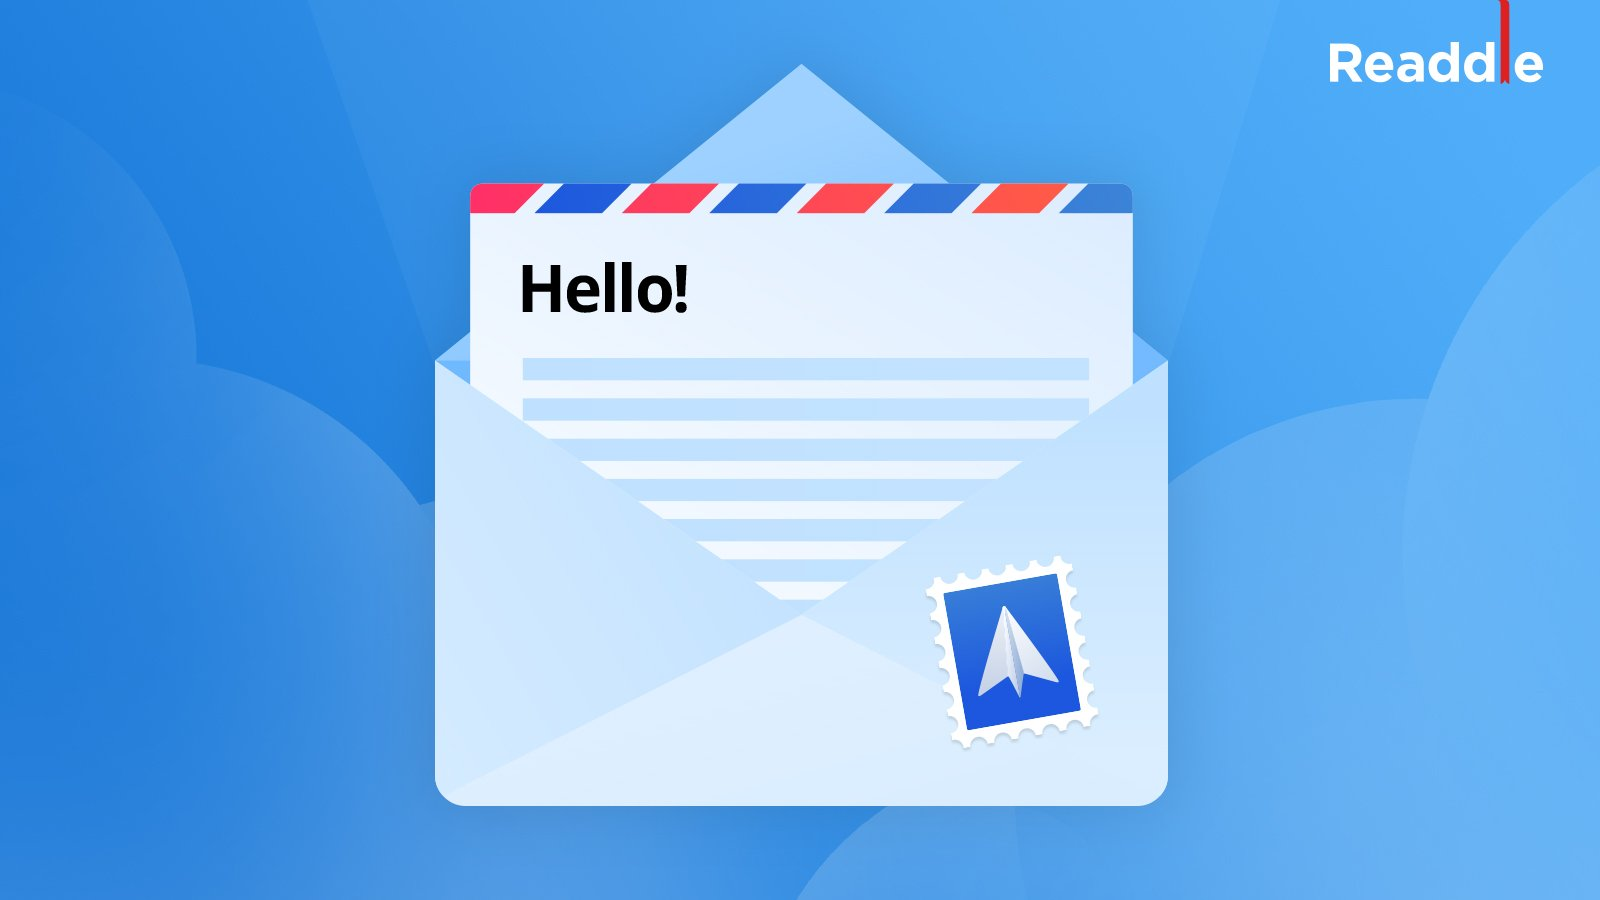 How to start an email: The best and worst email greetings